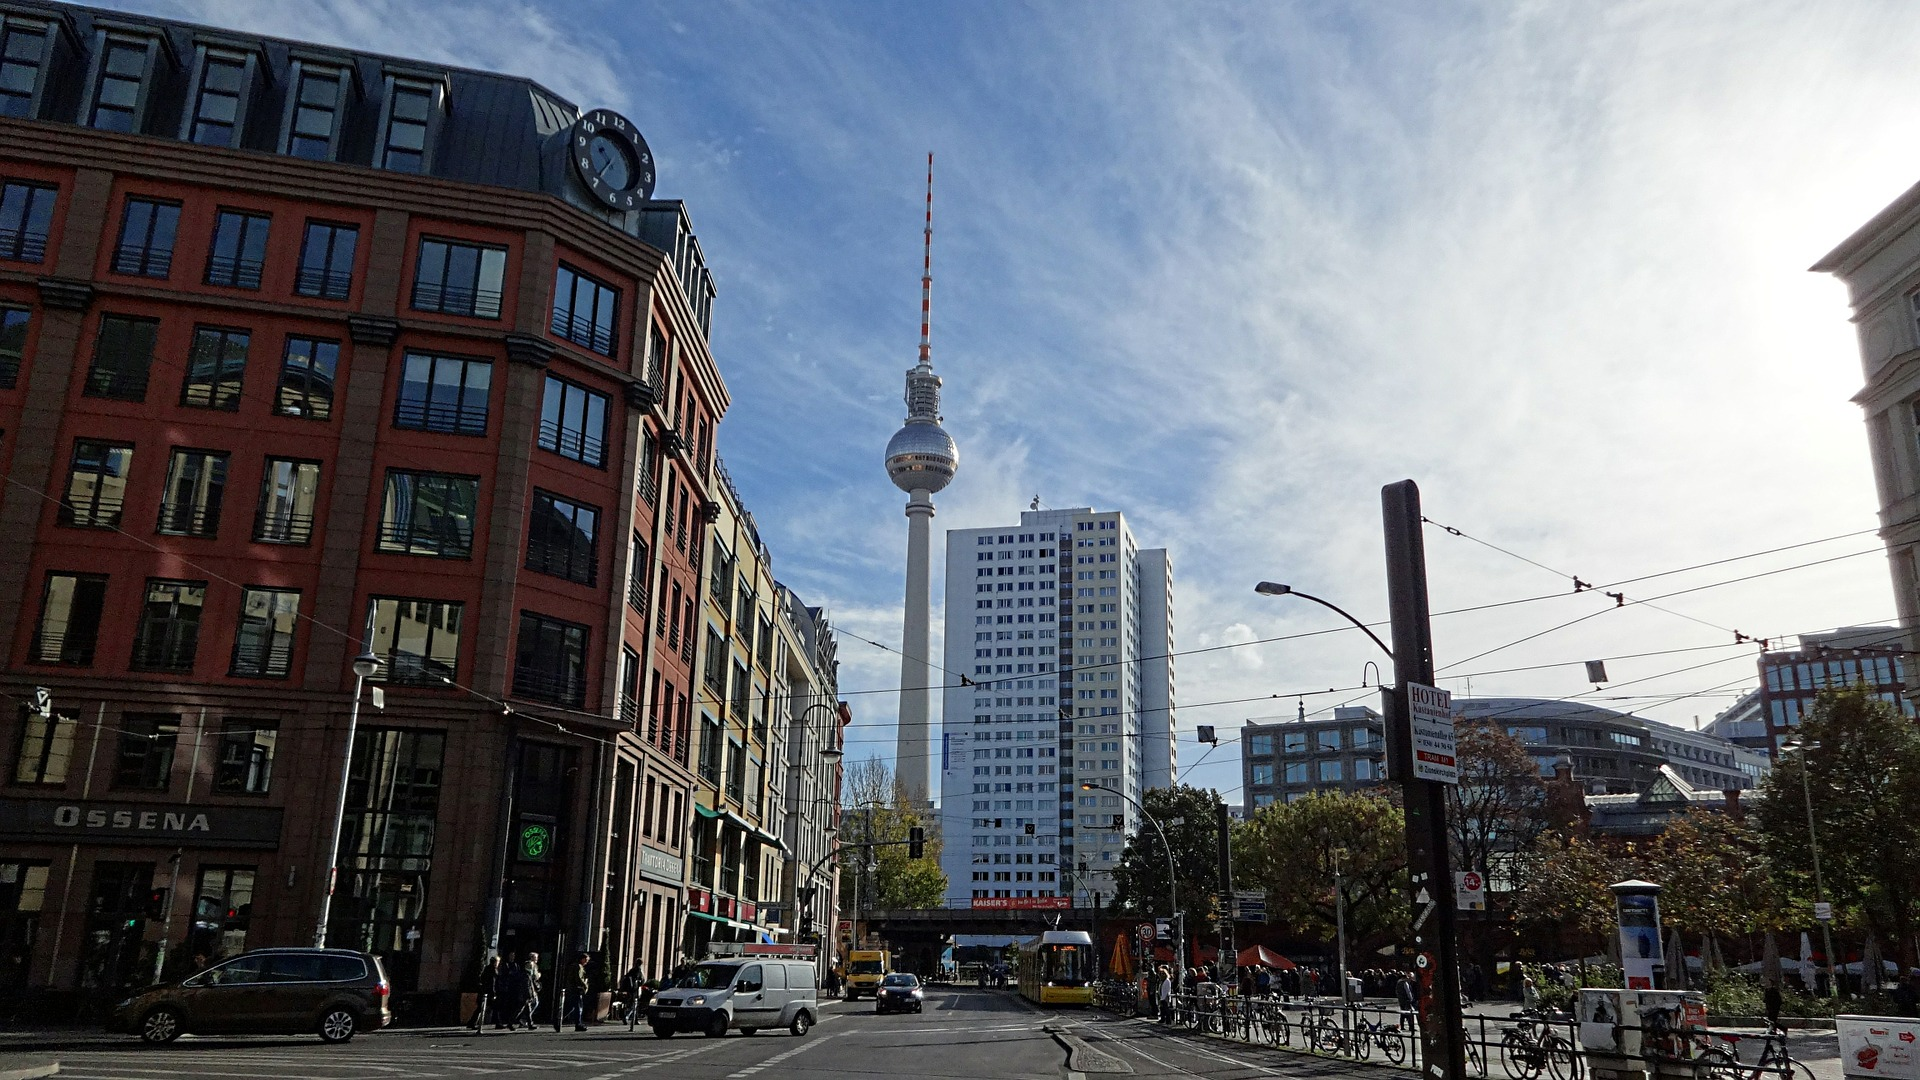 Alexanderplatz, plaza in Berlin, Germany